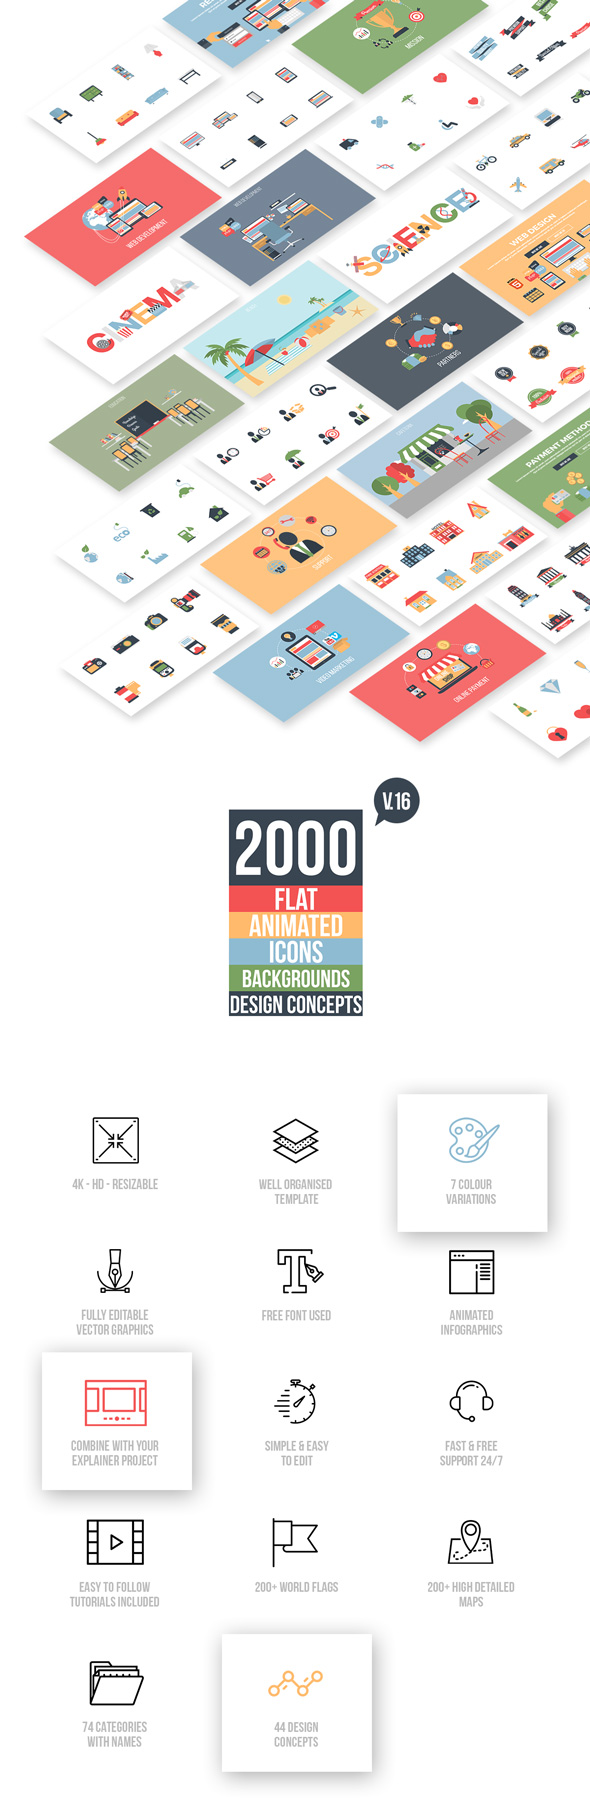 Flat Animated Icons Library - 9